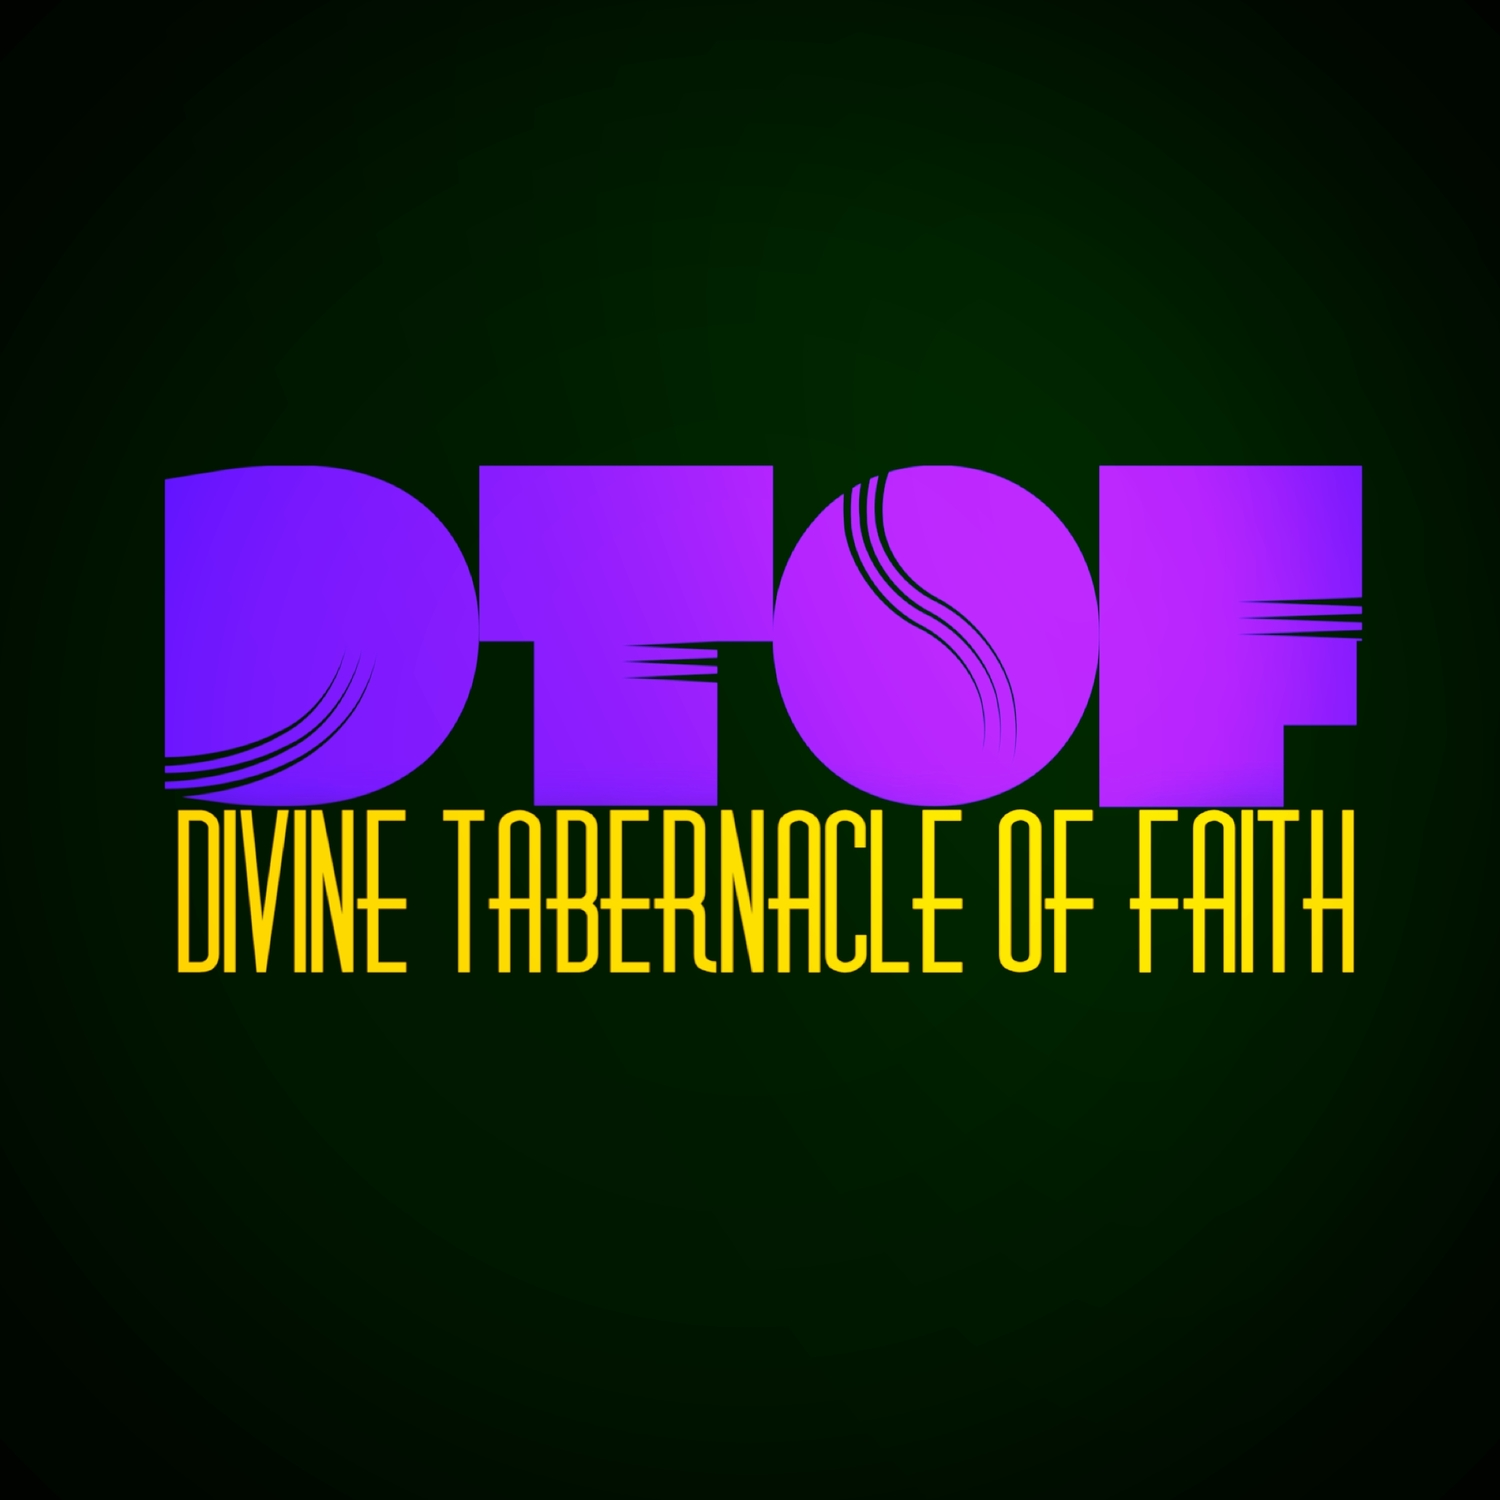 Divine Tabernacle of Faith